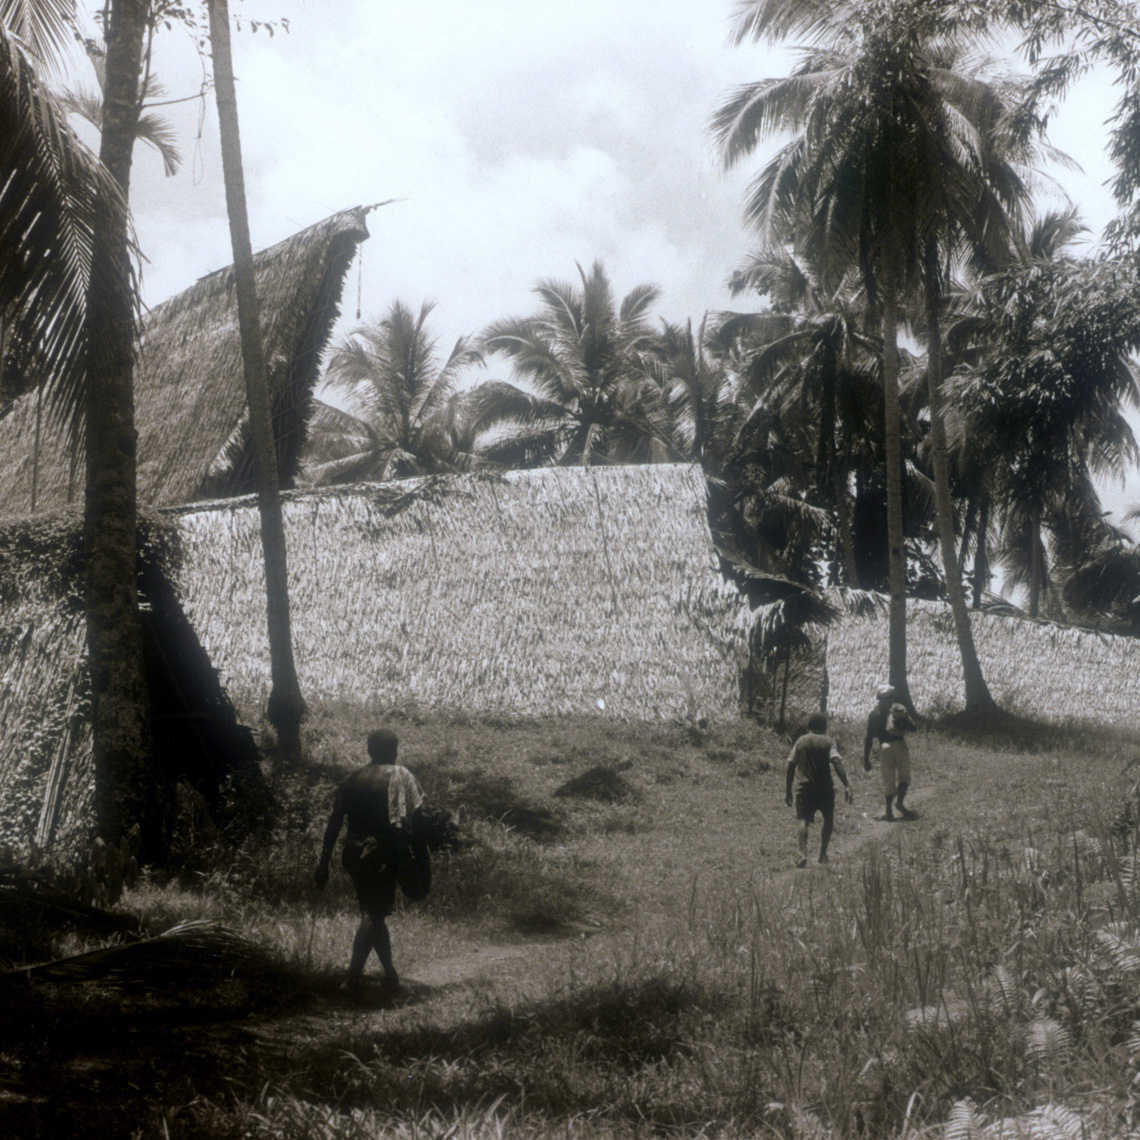 Walking Into Abelam Village With Tall Ceremonial House, Collecting New Guinea Art